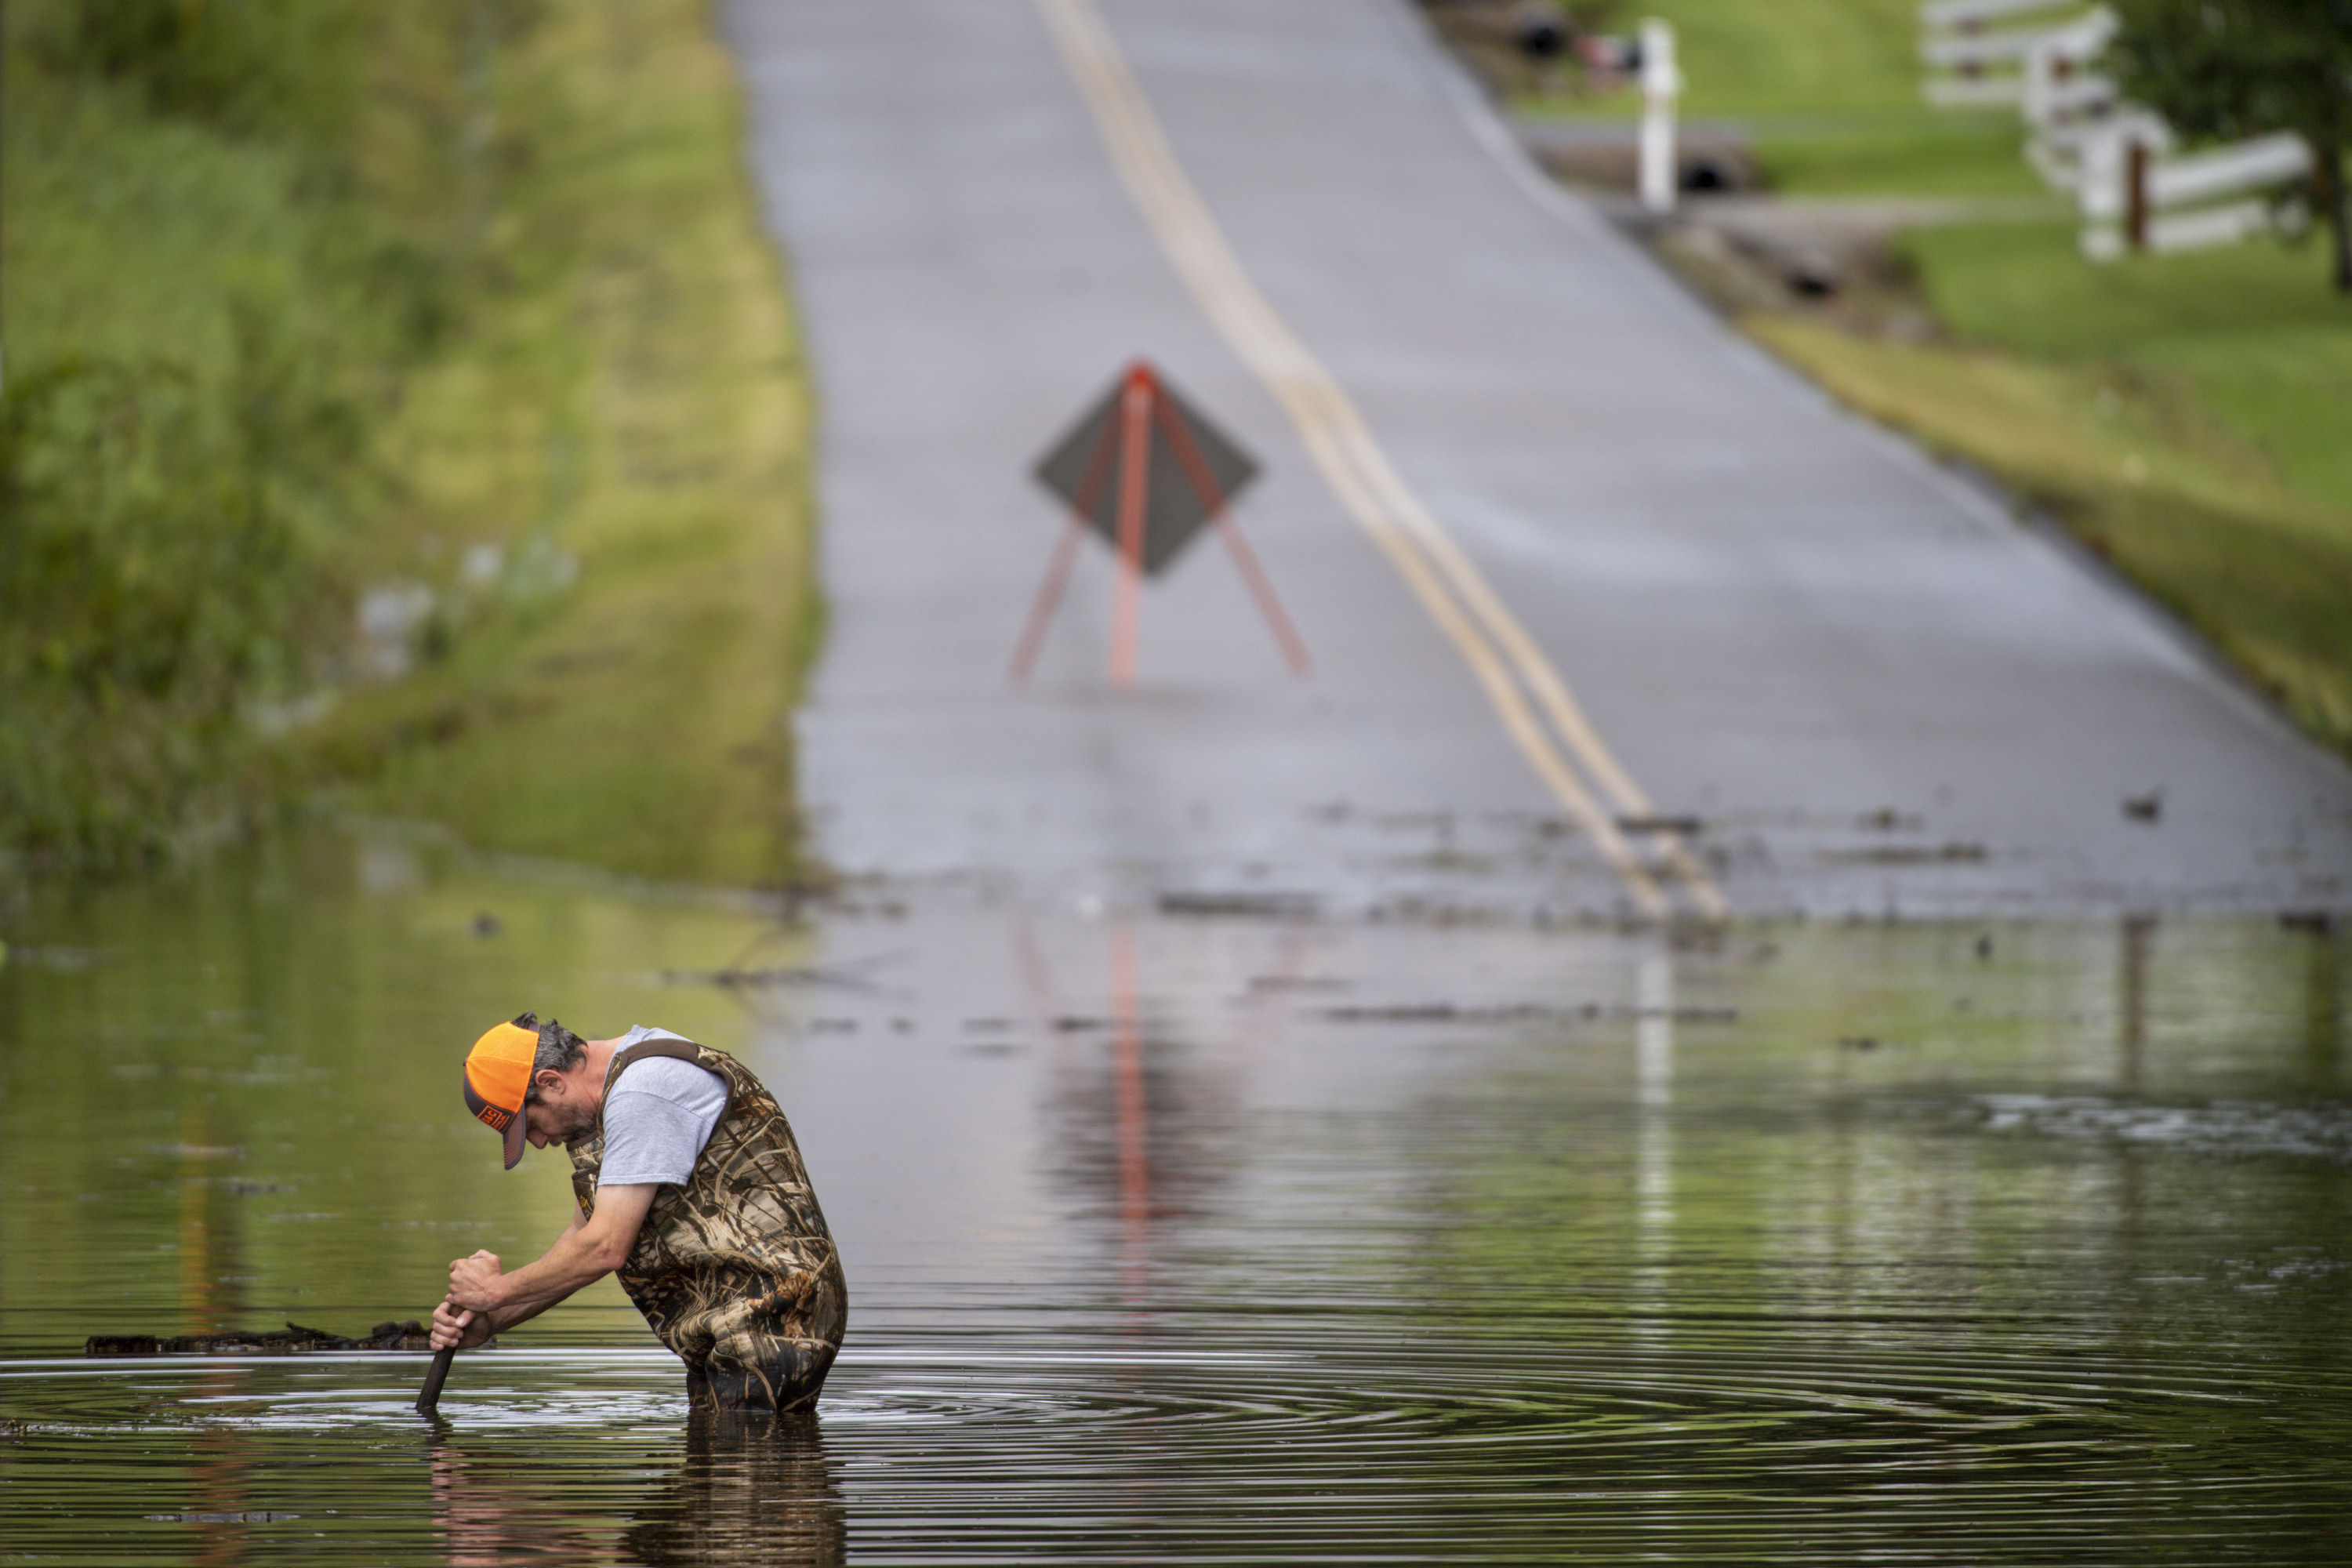 A man stands in waist-deep water on a flooded road, pushing a rod-like instrument below the surface